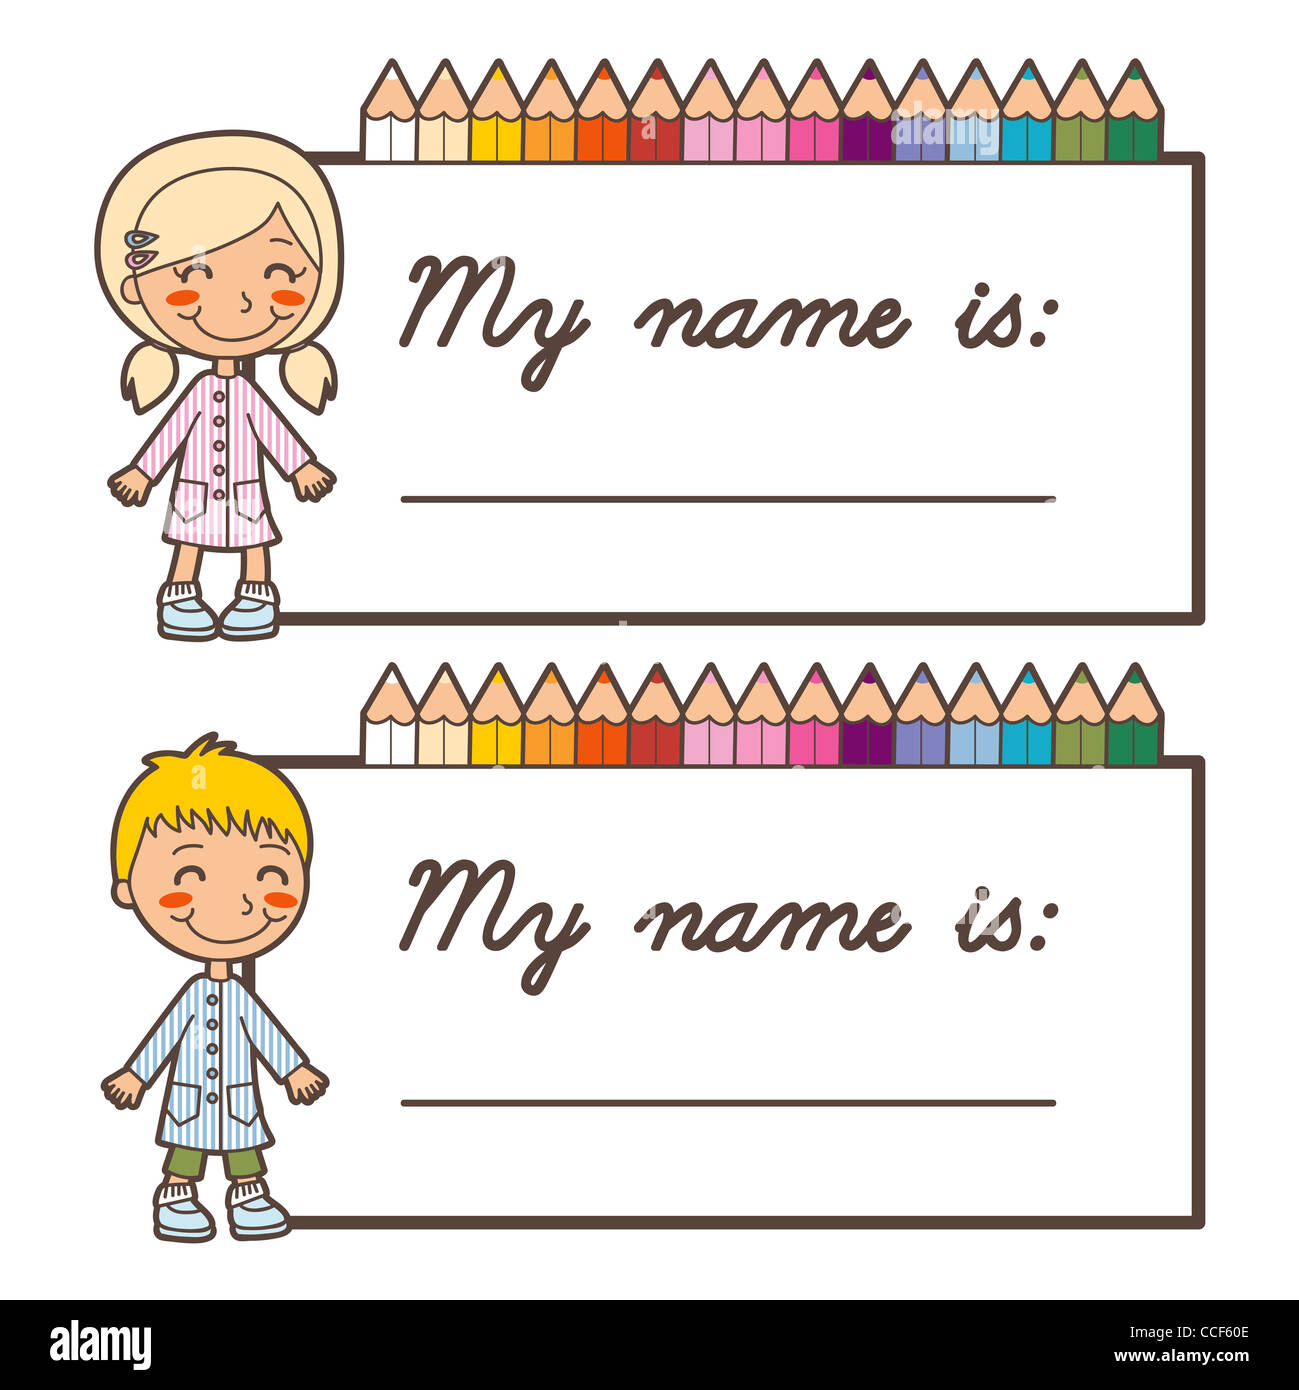 set of two back to school name tag stickers for boy and girl with